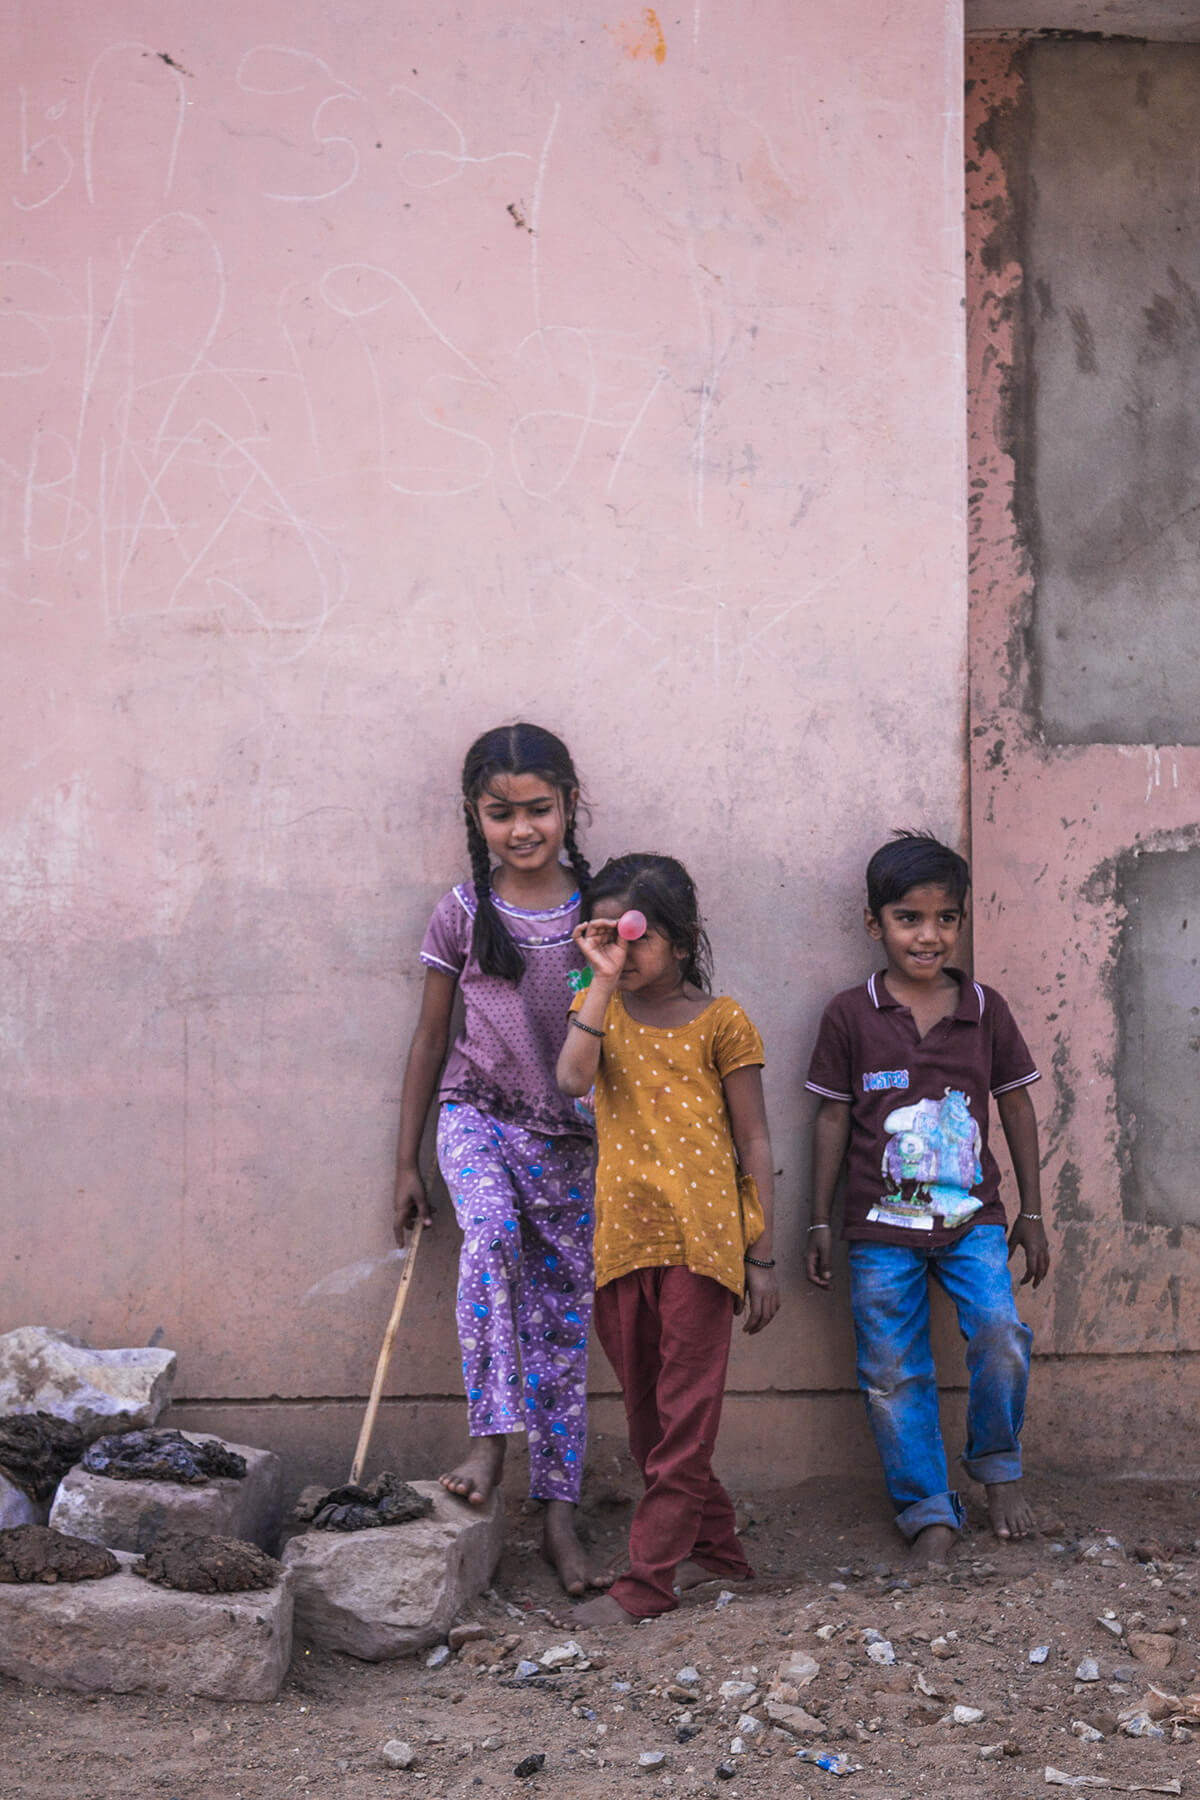 Kids playing in the streets of  Kutch